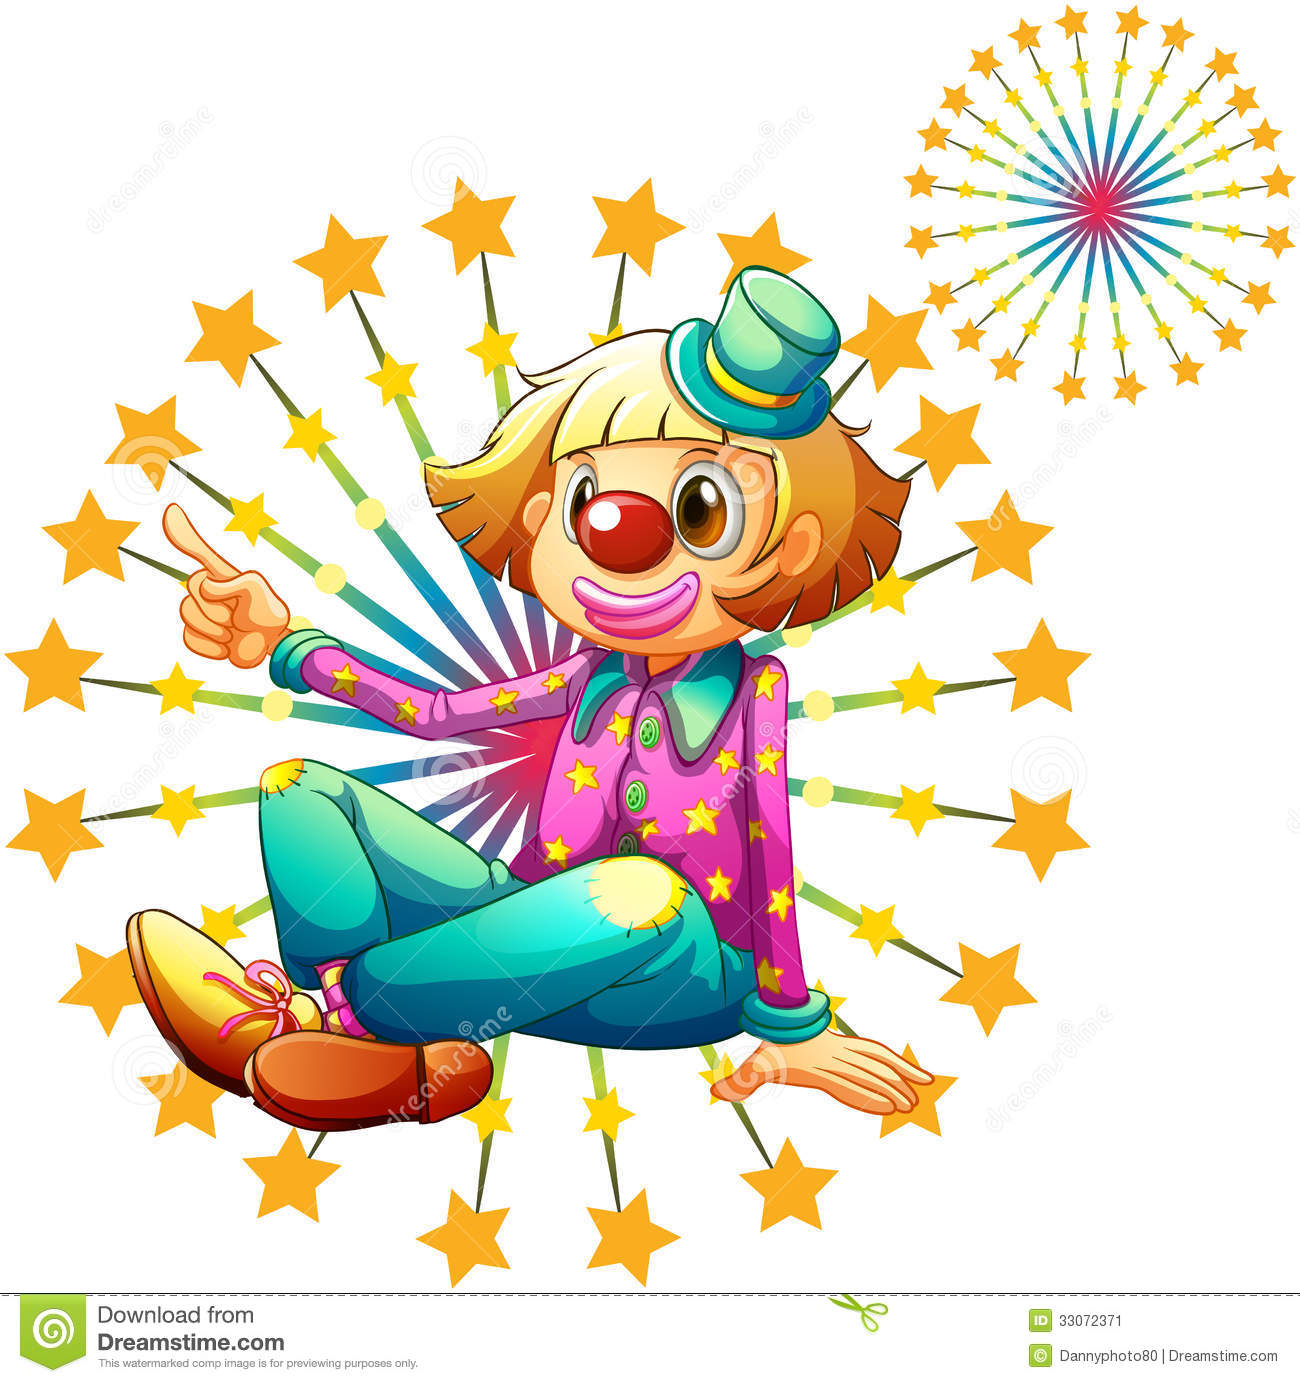 fireworks clipart no background clipart panda free clipart images rh clipartpanda com fireworks clipart images fireworks pictures free clipart